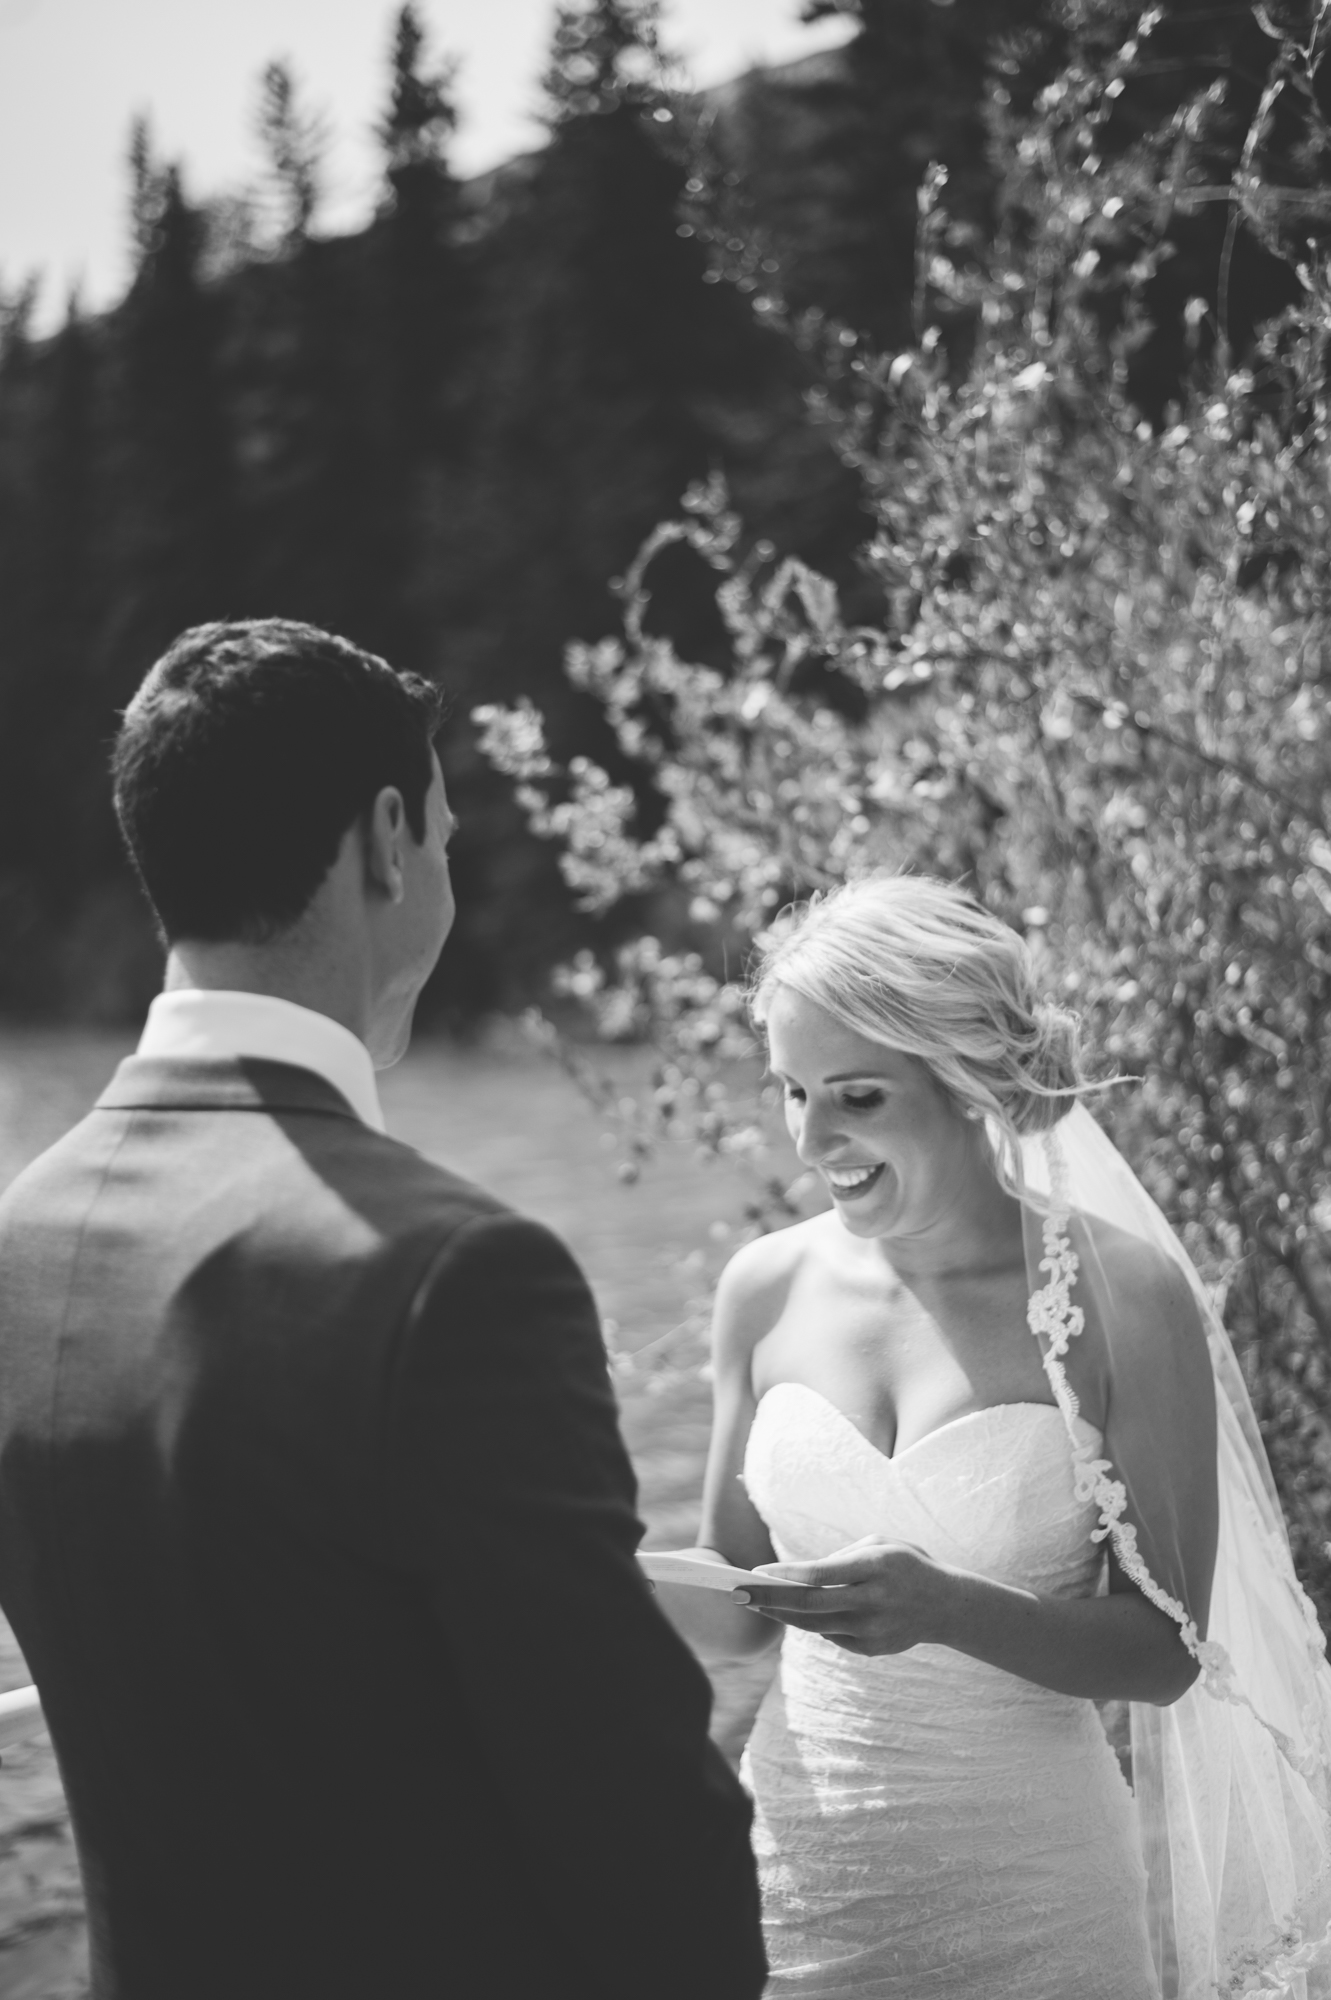 Rocky Mountain Banff Calgary Alberta Wedding-Jessika Hunter Photo-39.JPG